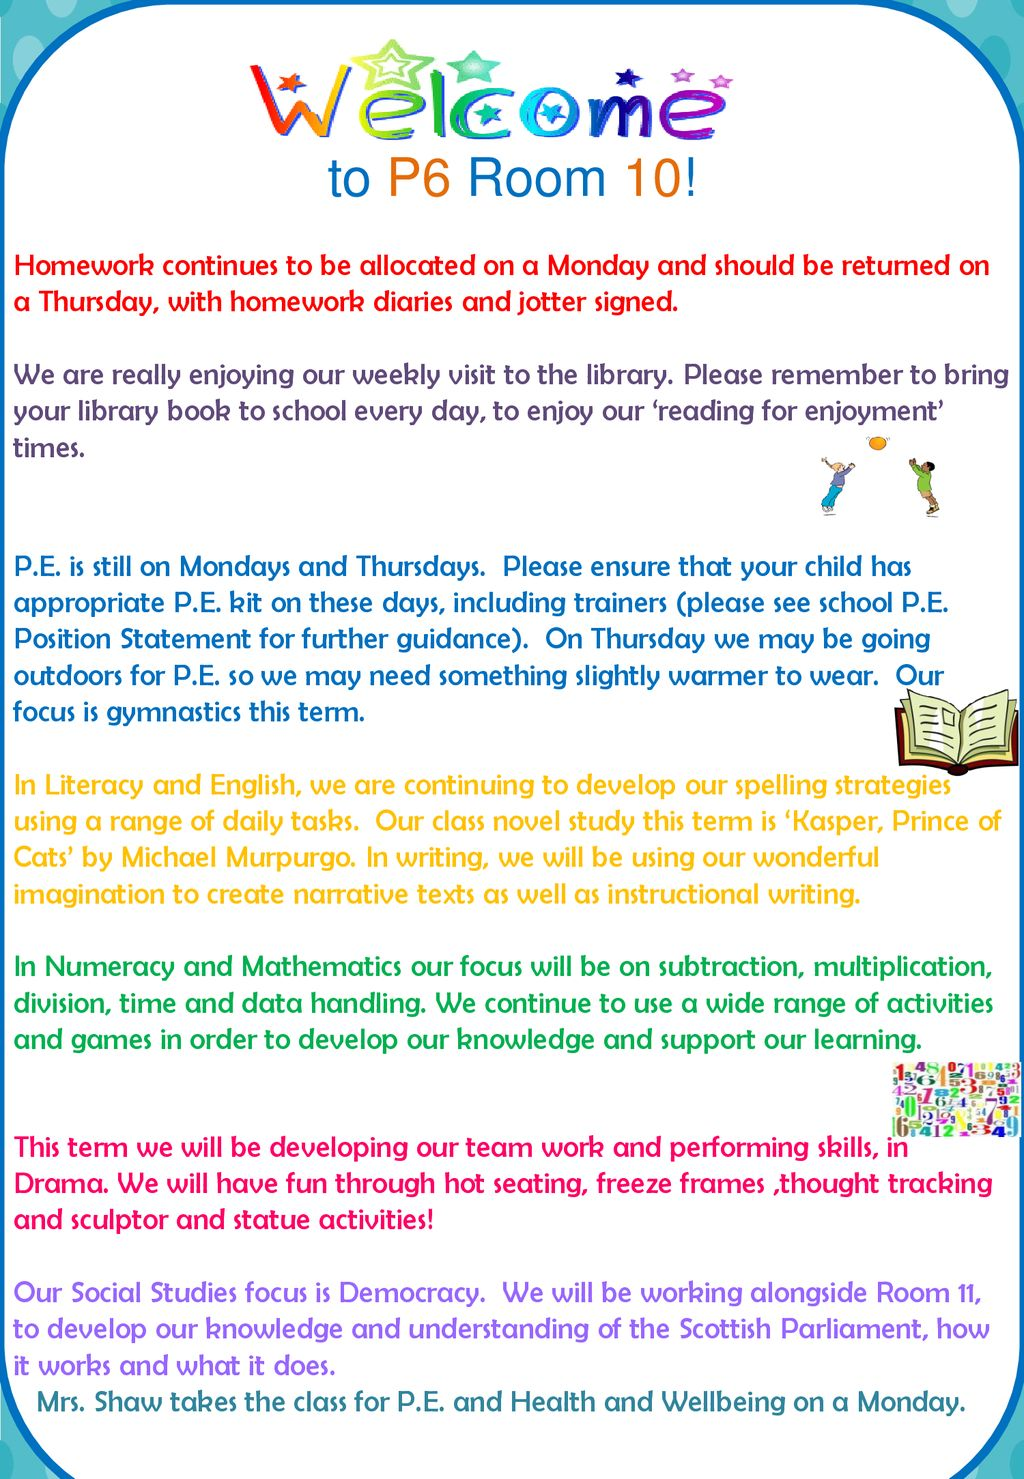 To P6 Room 10! Homework continues to be allocated on a